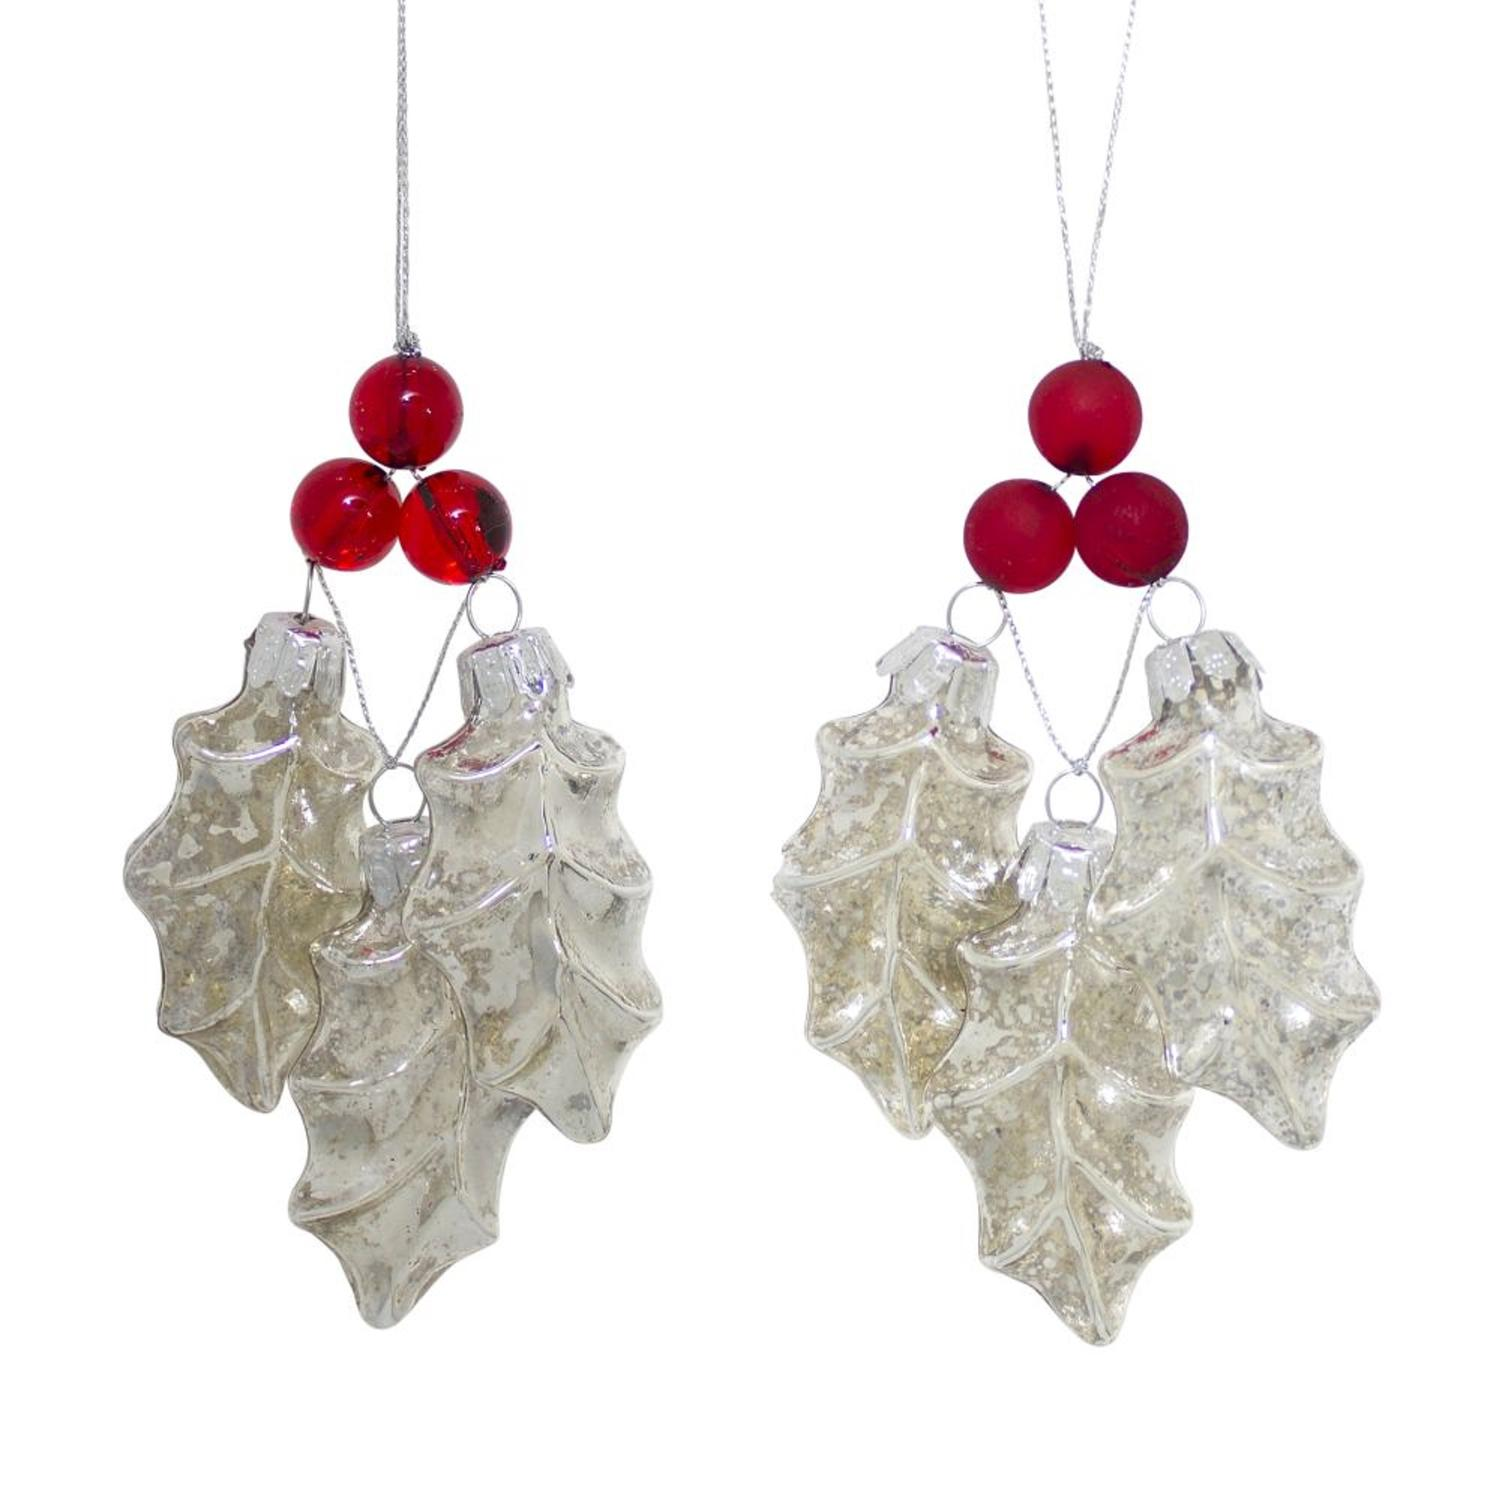 Club Pack of 12 Red and Clear Holly Leaves with Berry Christmas Tree Ornaments 8.5""